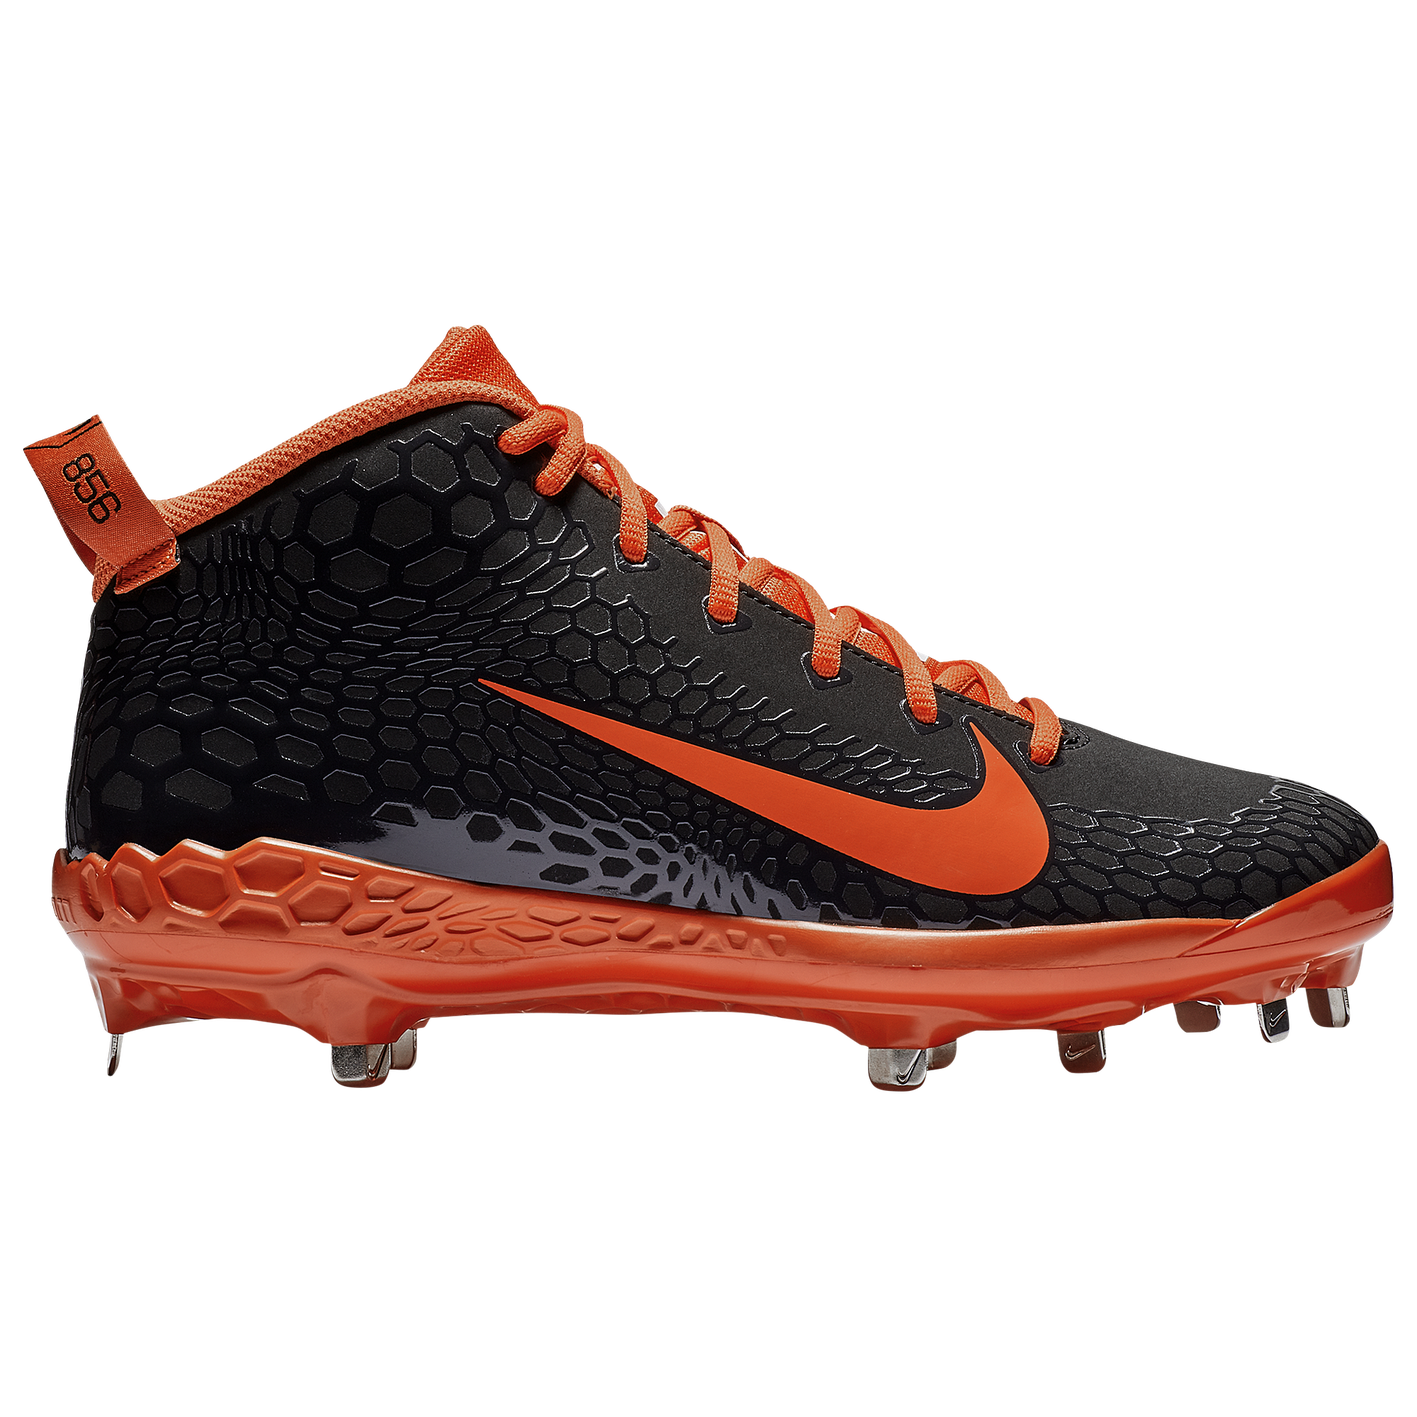 1dc857161bfb8 Nike Force Zoom Trout 5 Pro - Men s - Baseball - Shoes - Black Team ...